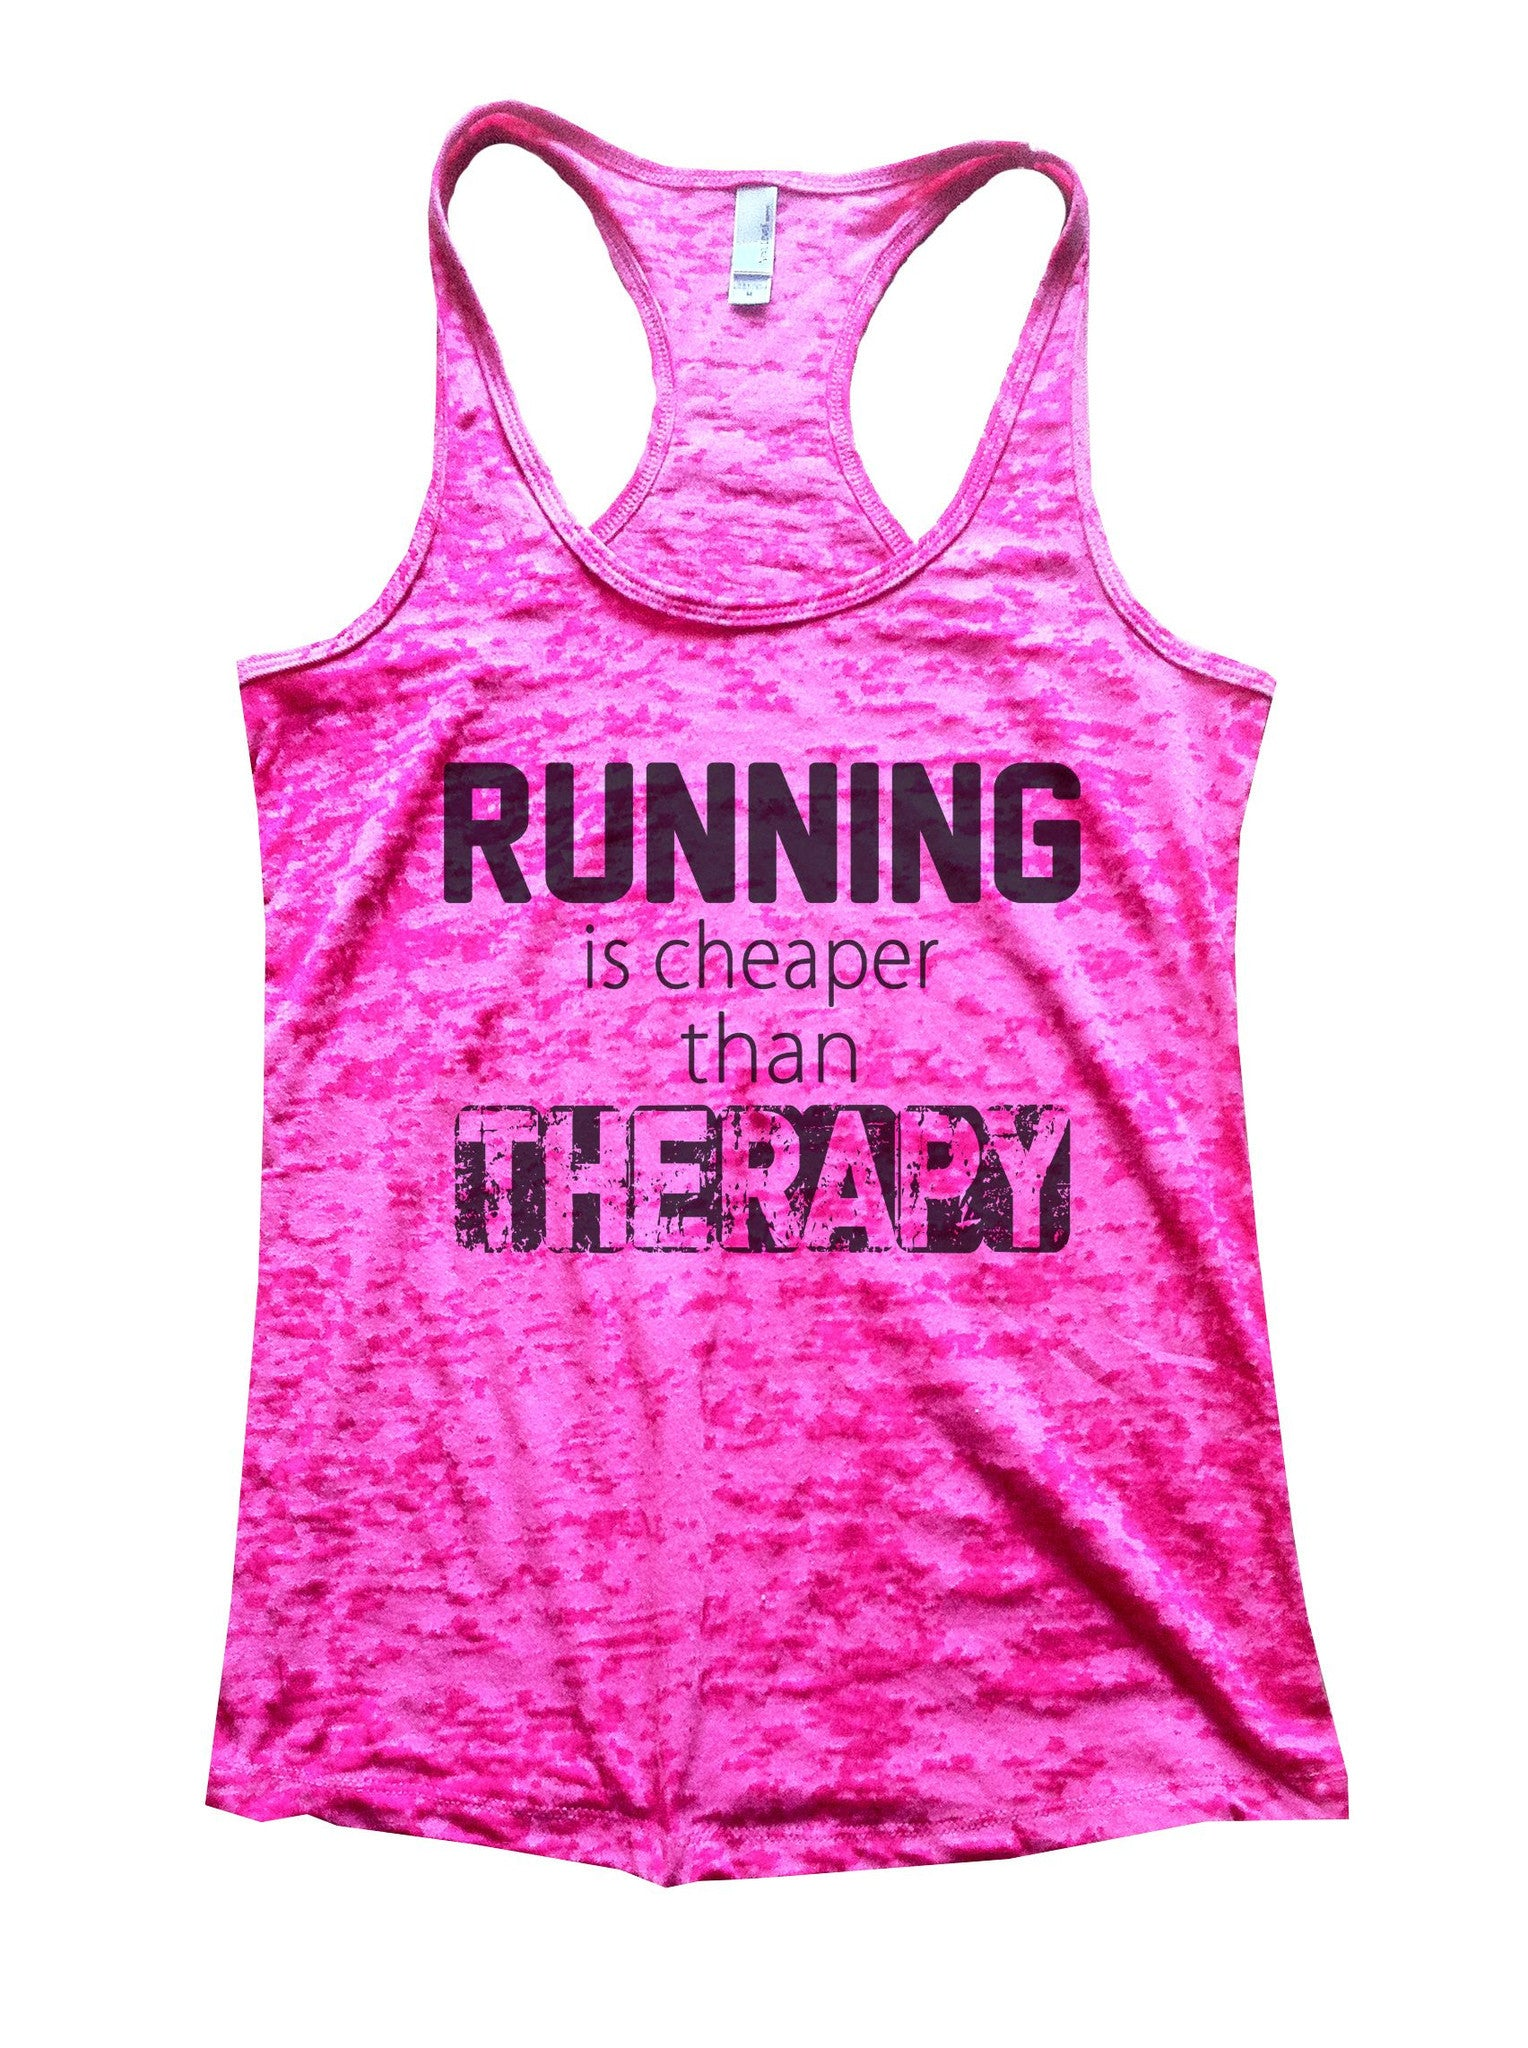 Running Is Cheaper Than Therapy Burnout Tank Top By BurnoutTankTops.com - 674 - Funny Shirts Tank Tops Burnouts and Triblends  - 3